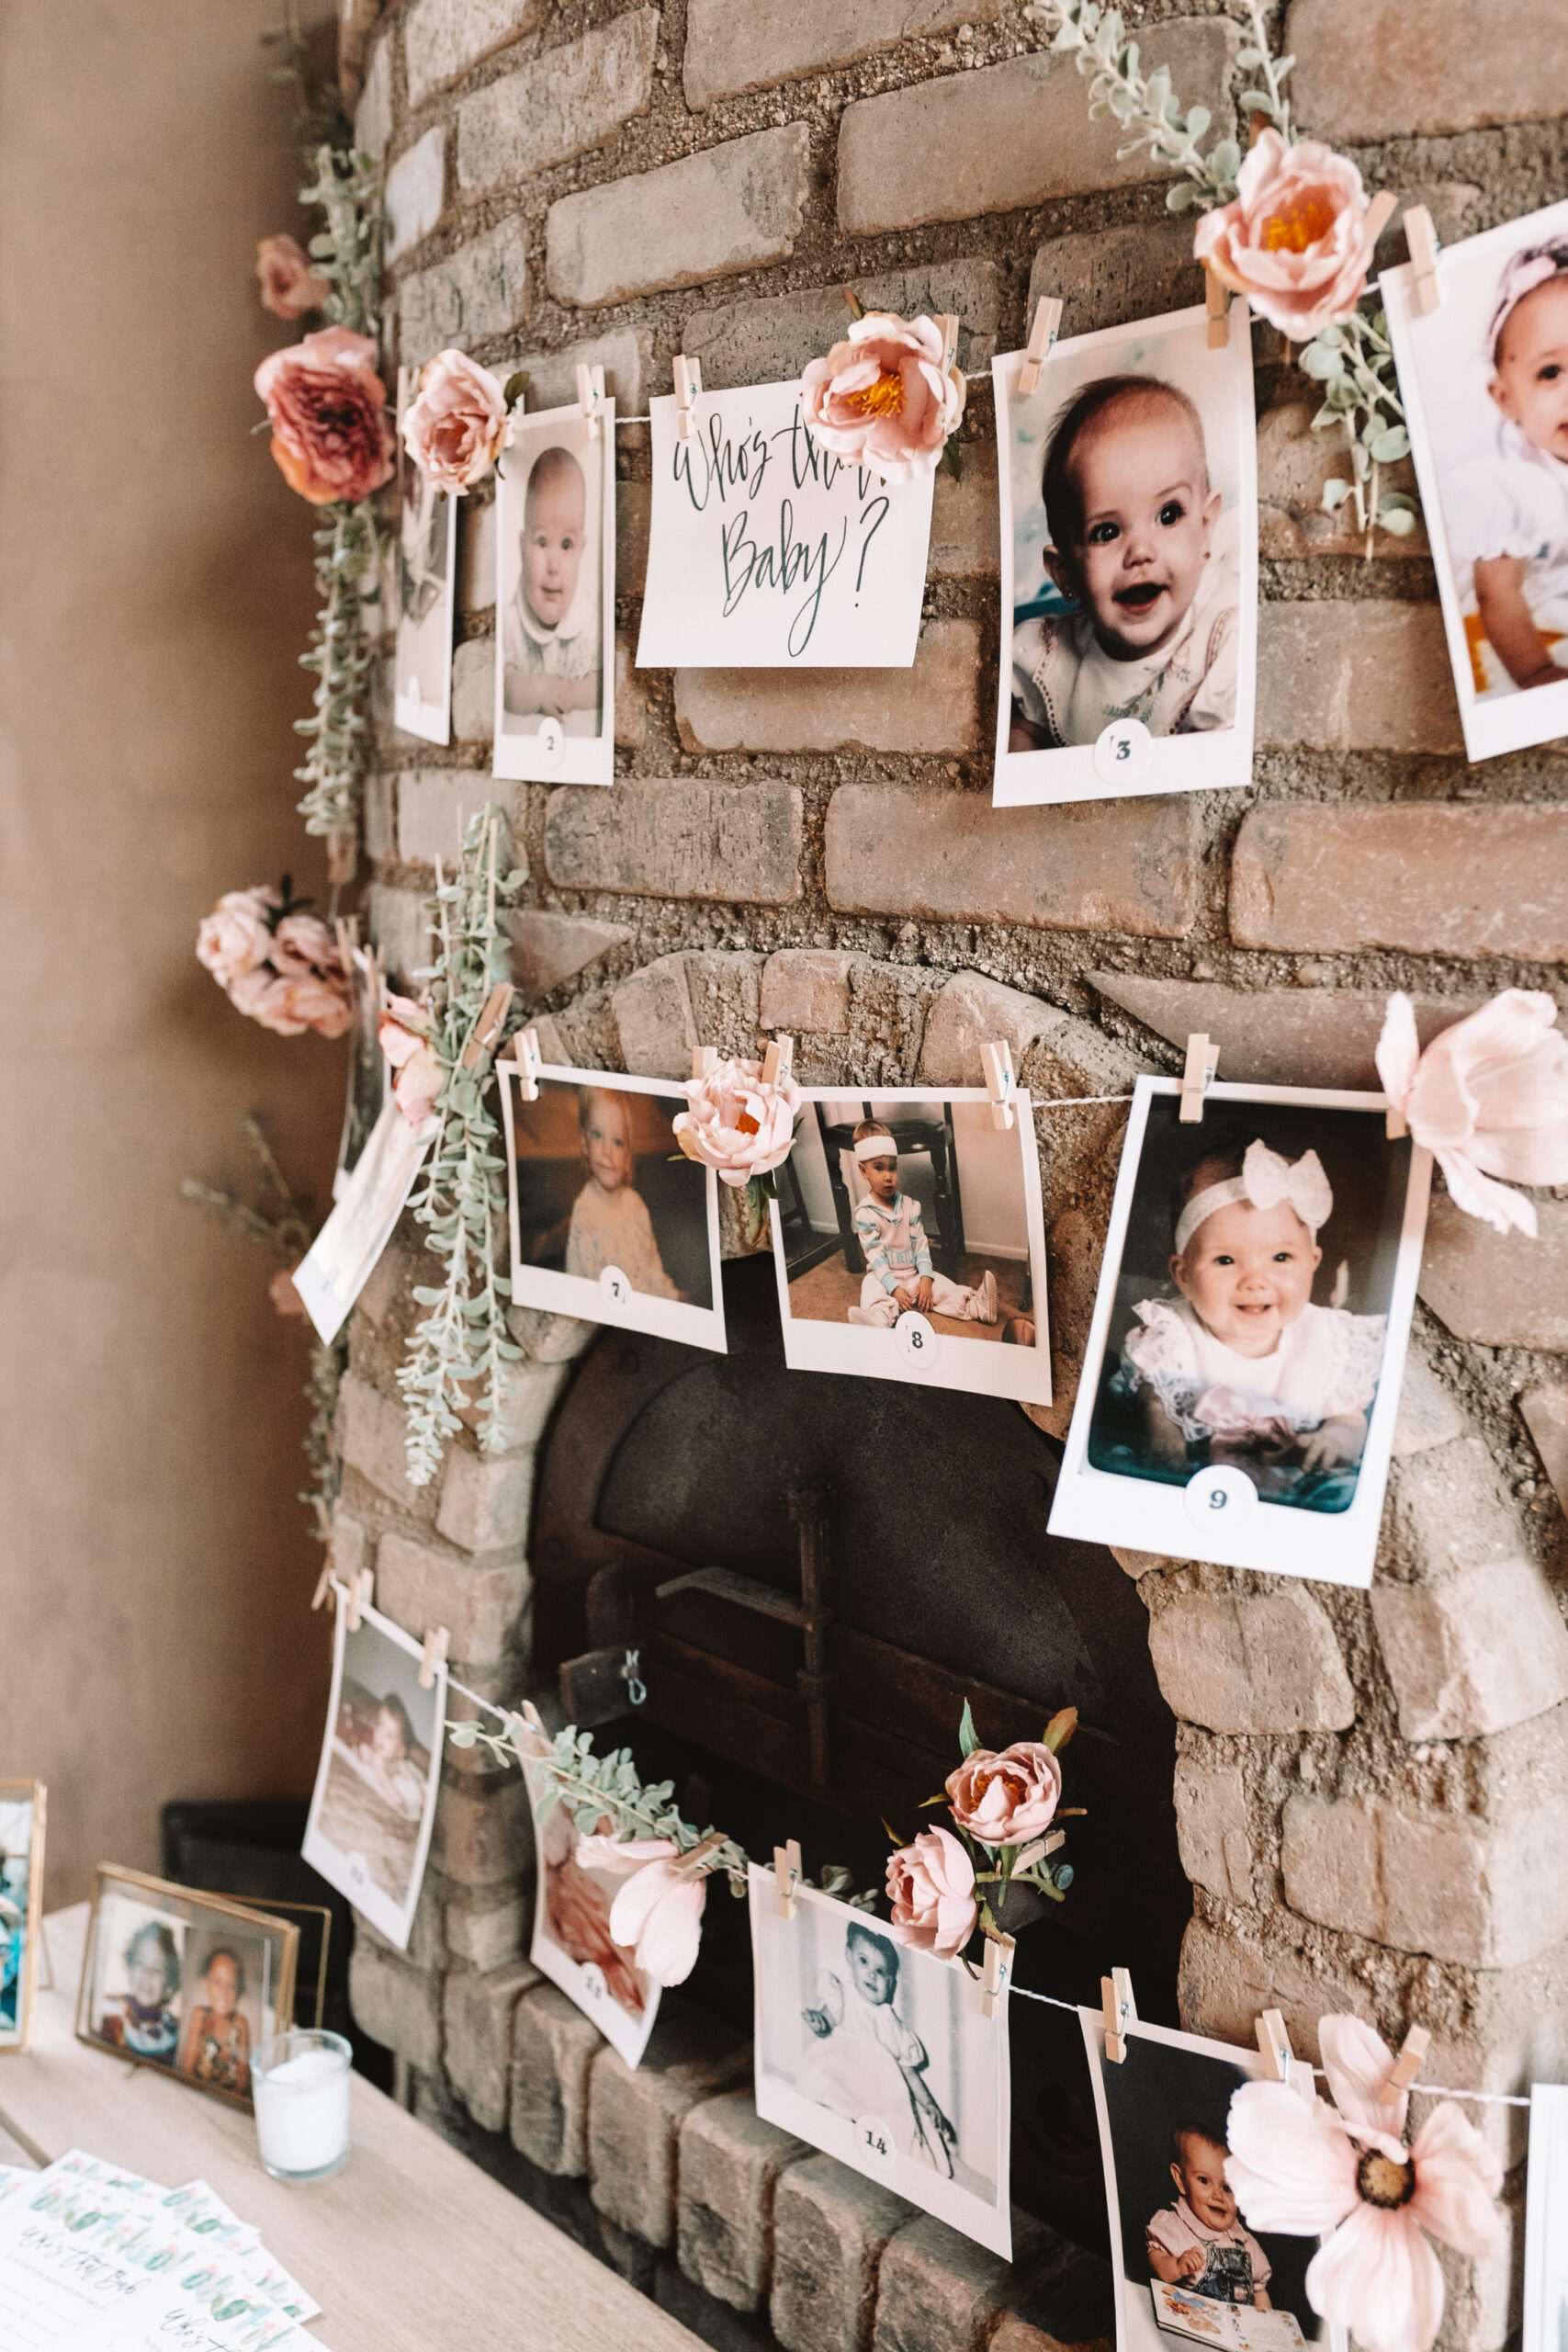 guess the baby for a fun baby shower game #babyshowerideas #guessthebaby #desertbohochic